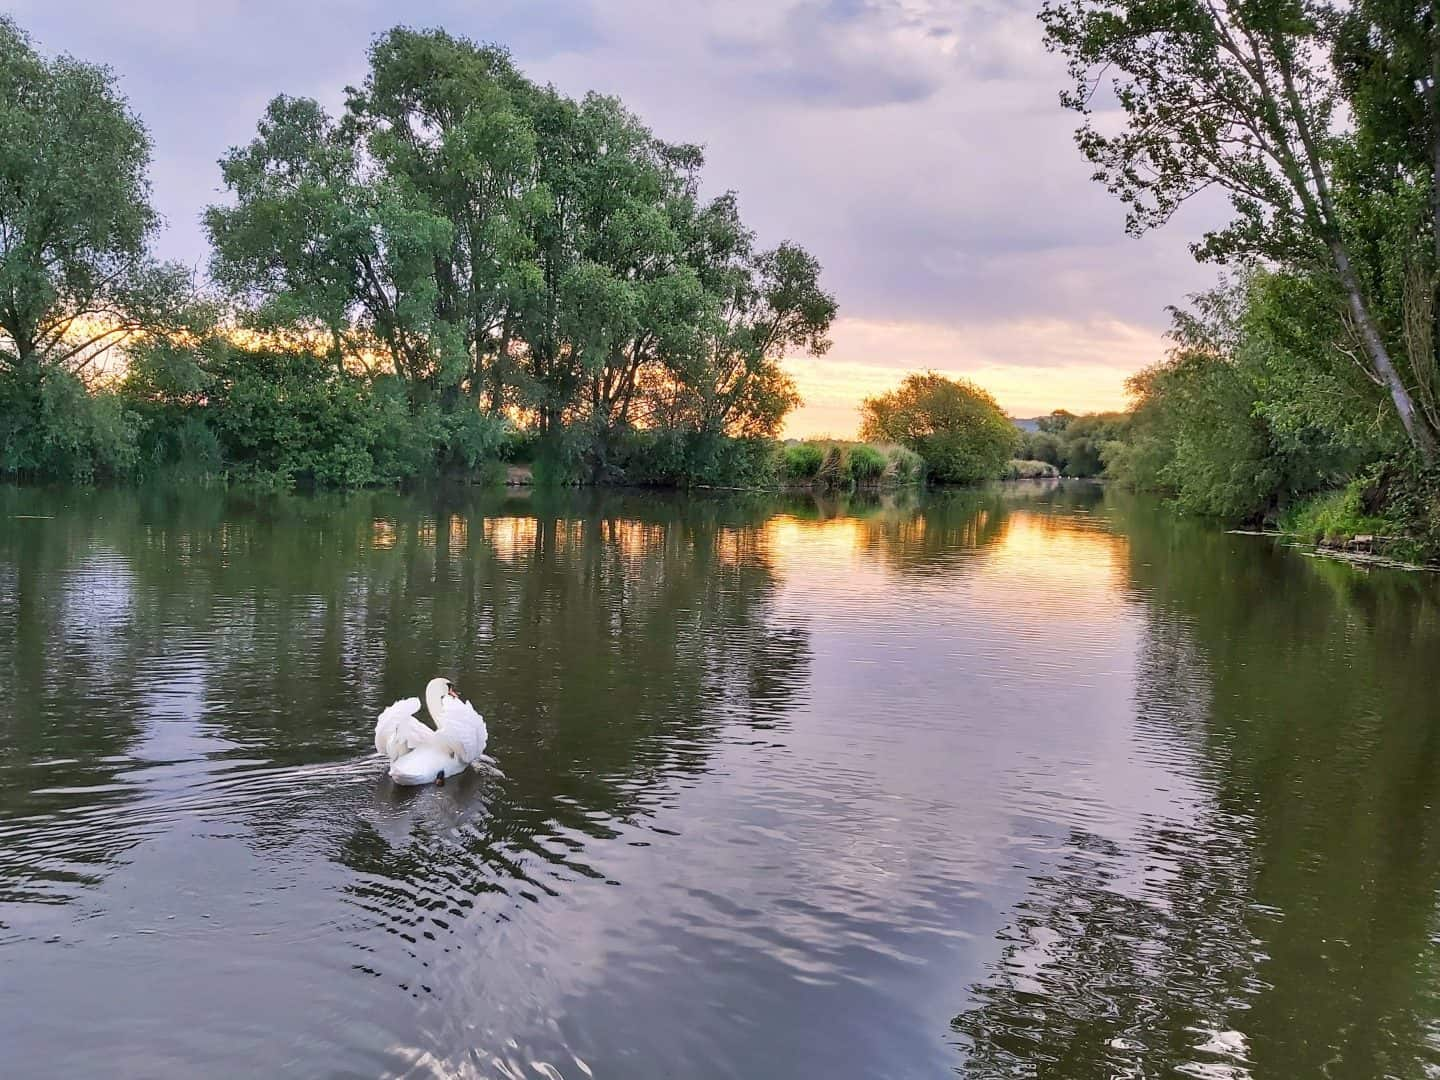 Swan with puffed up wings swimming away into the sunrise on the river